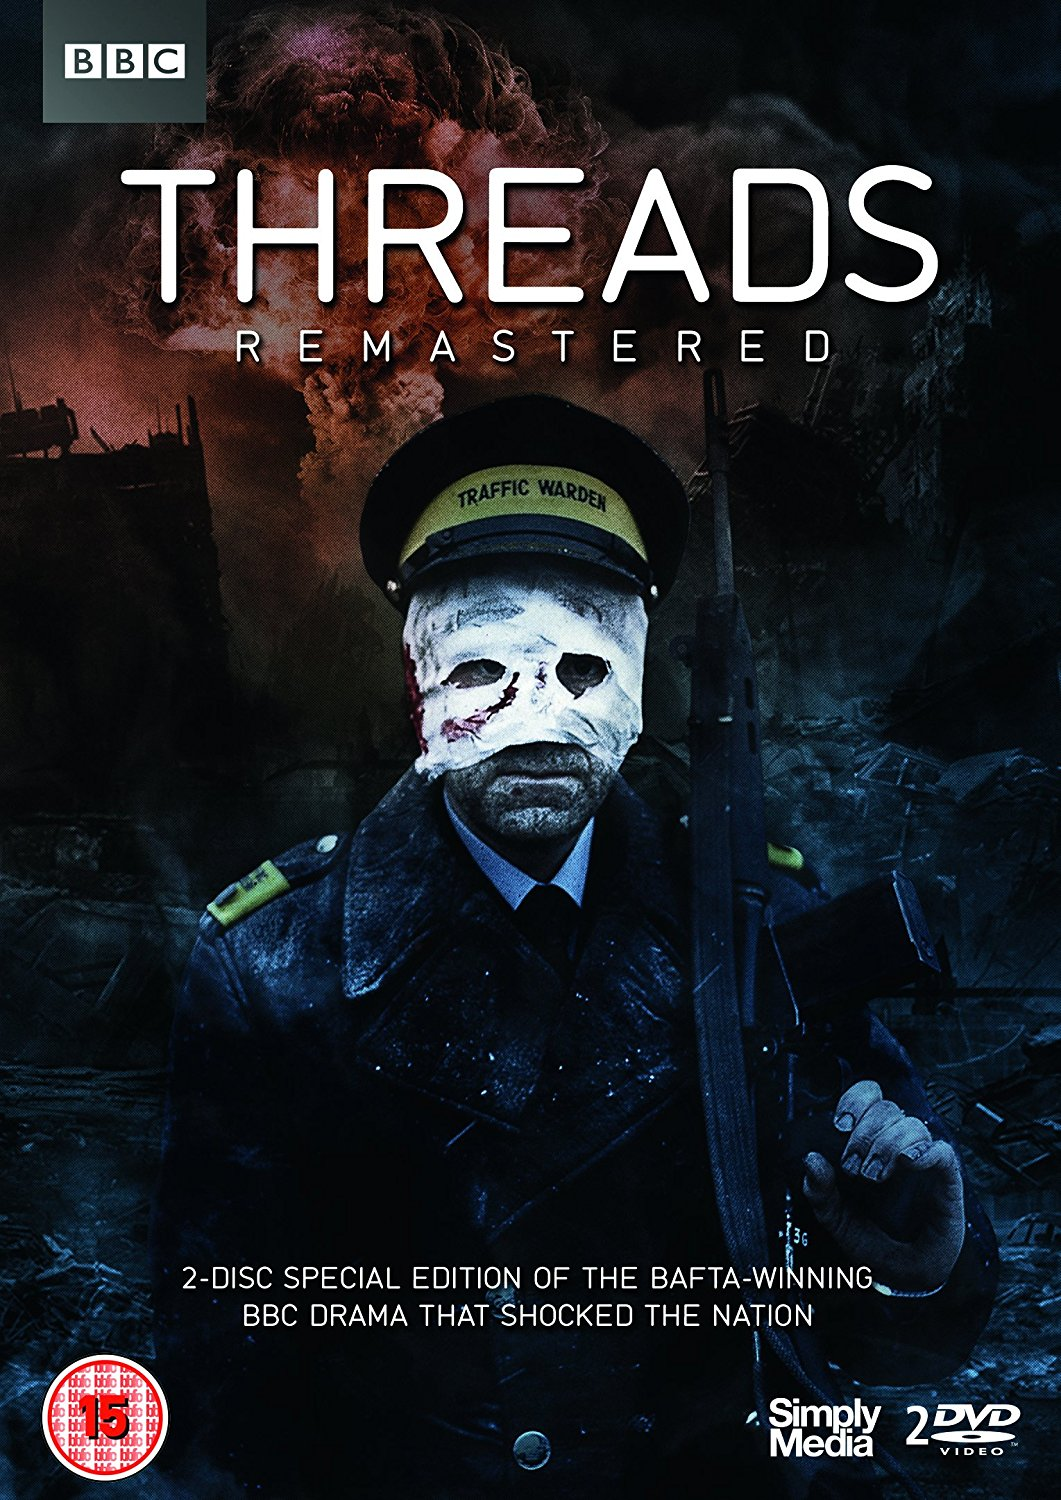 Threads remastered DVD review: this is the way the world ends